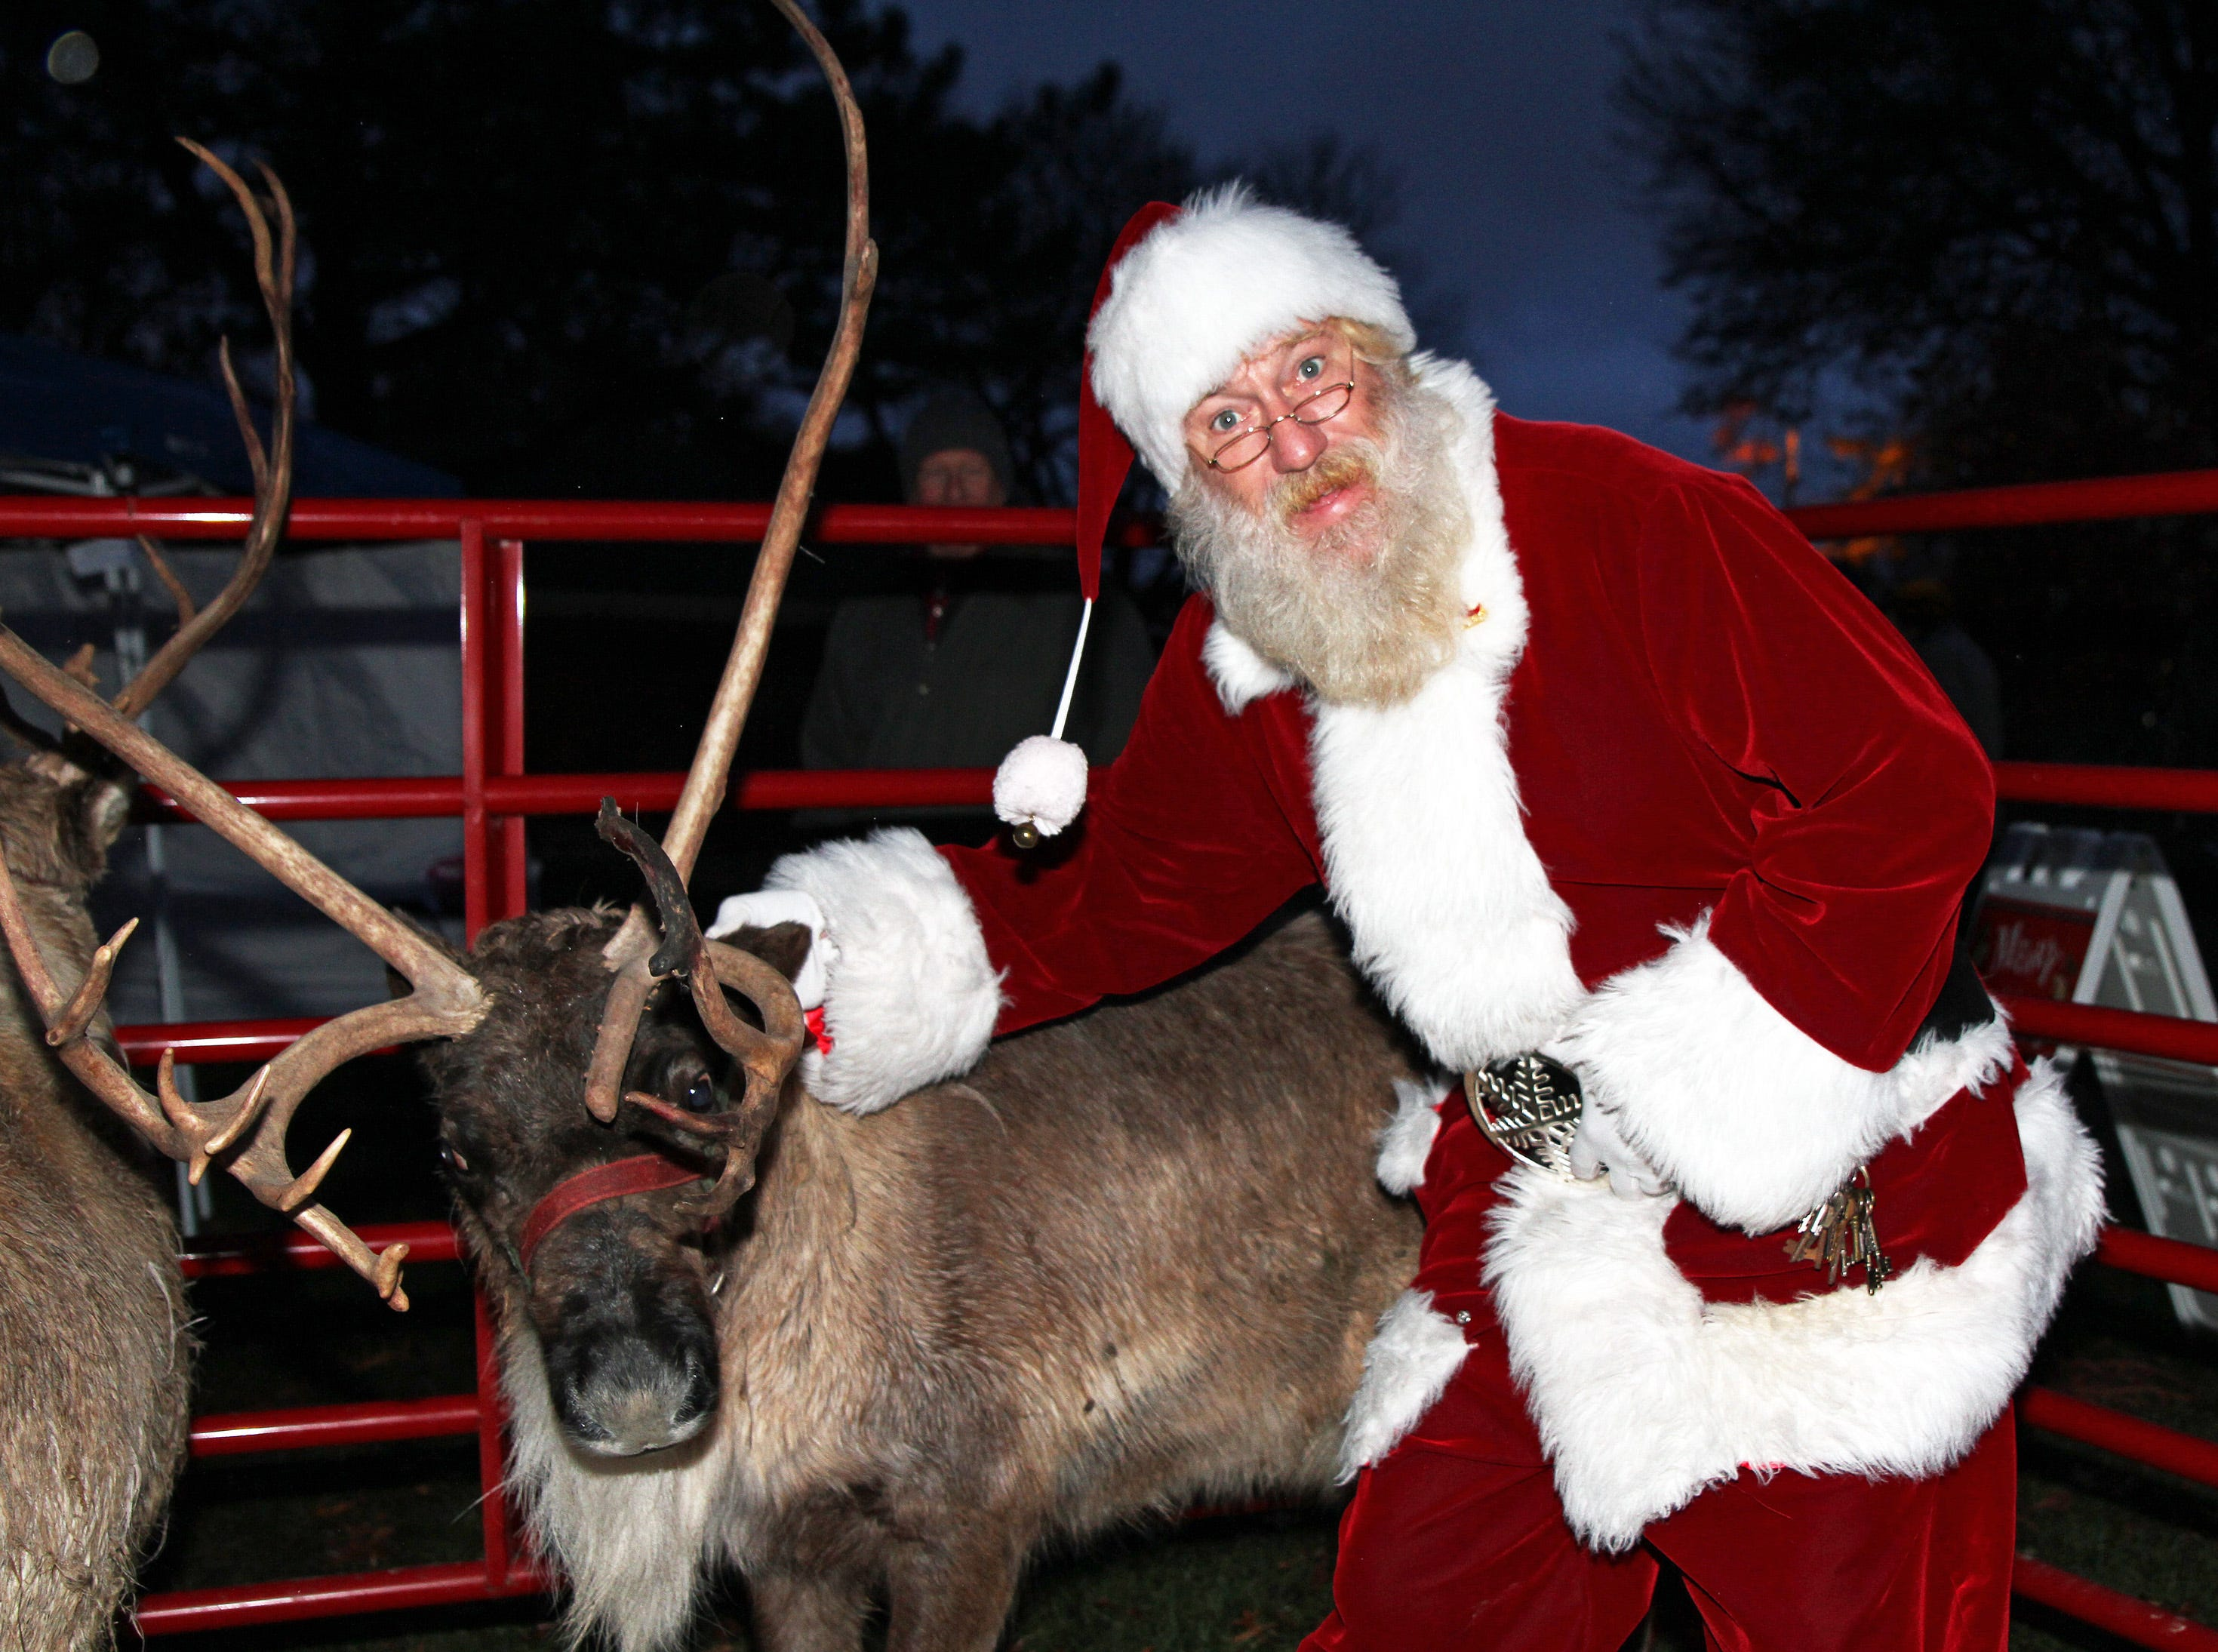 Santa checks on Rudy the Reindeer during UCAN's third annual Light Up Urbandale on Sunday, Dec. 2, 2018 at Lions Park in Urbandale. Holiday festivities included a visit from Santa, crafts, goodies, official tree lighting ceremony, live reindeer and entertainment. This event helps raise awareness and support for the Urbandale Community Action Network Holiday Helping Hands Programs for families, kids, teens and seniors in need.